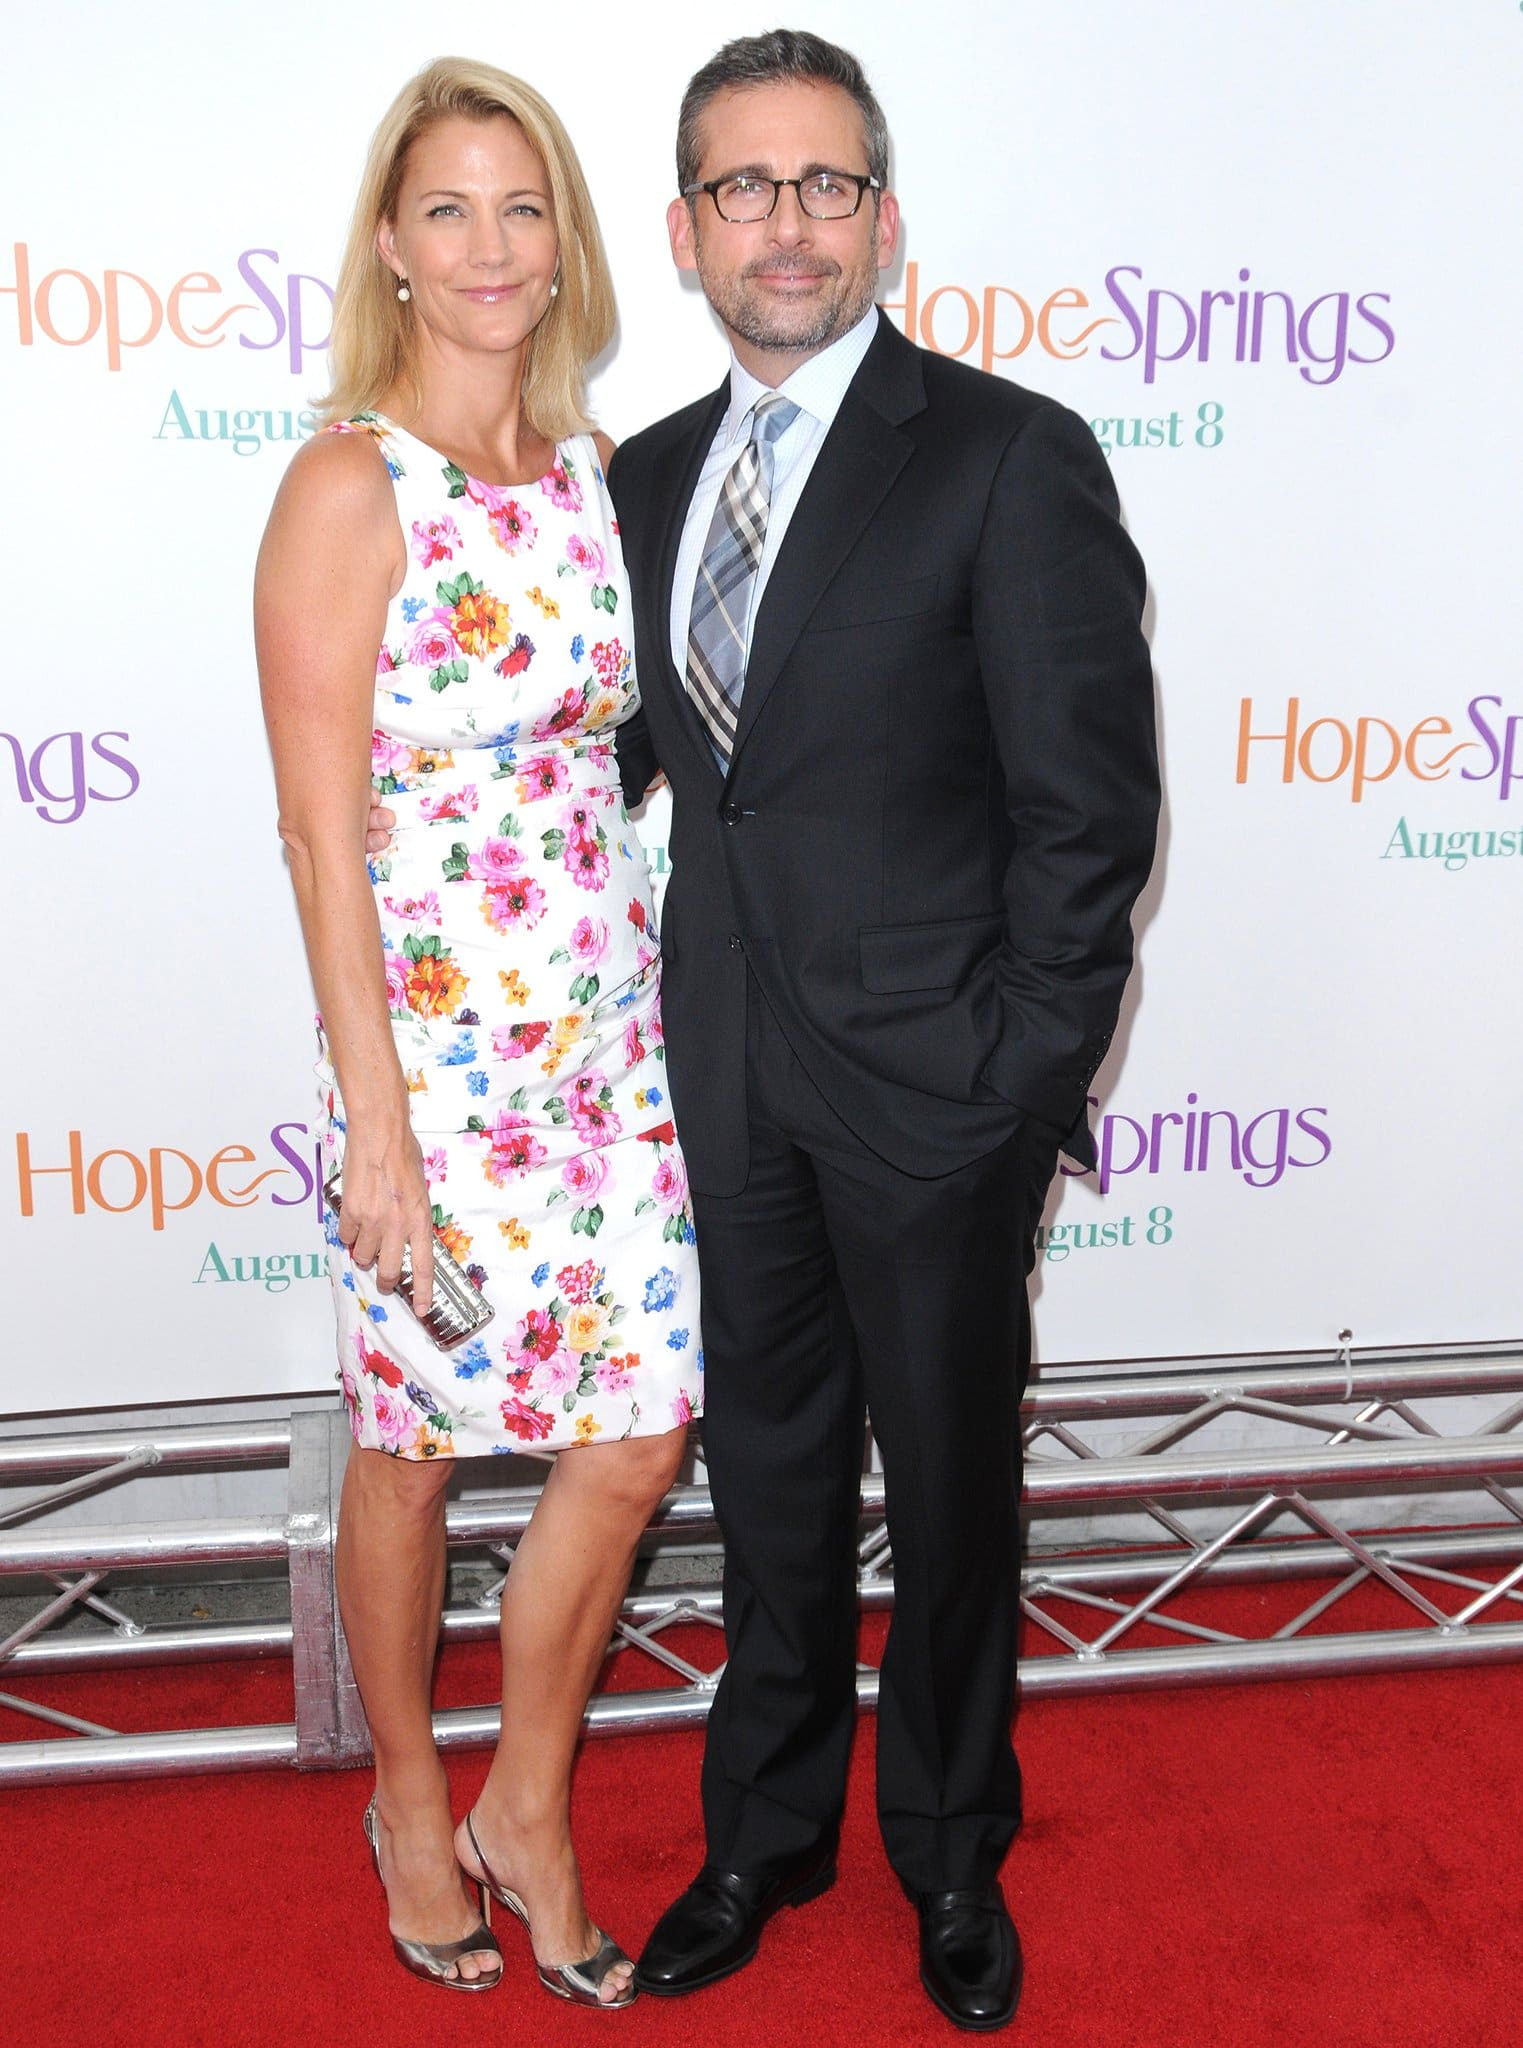 Nancy Carell and Steve Carell share two kids together